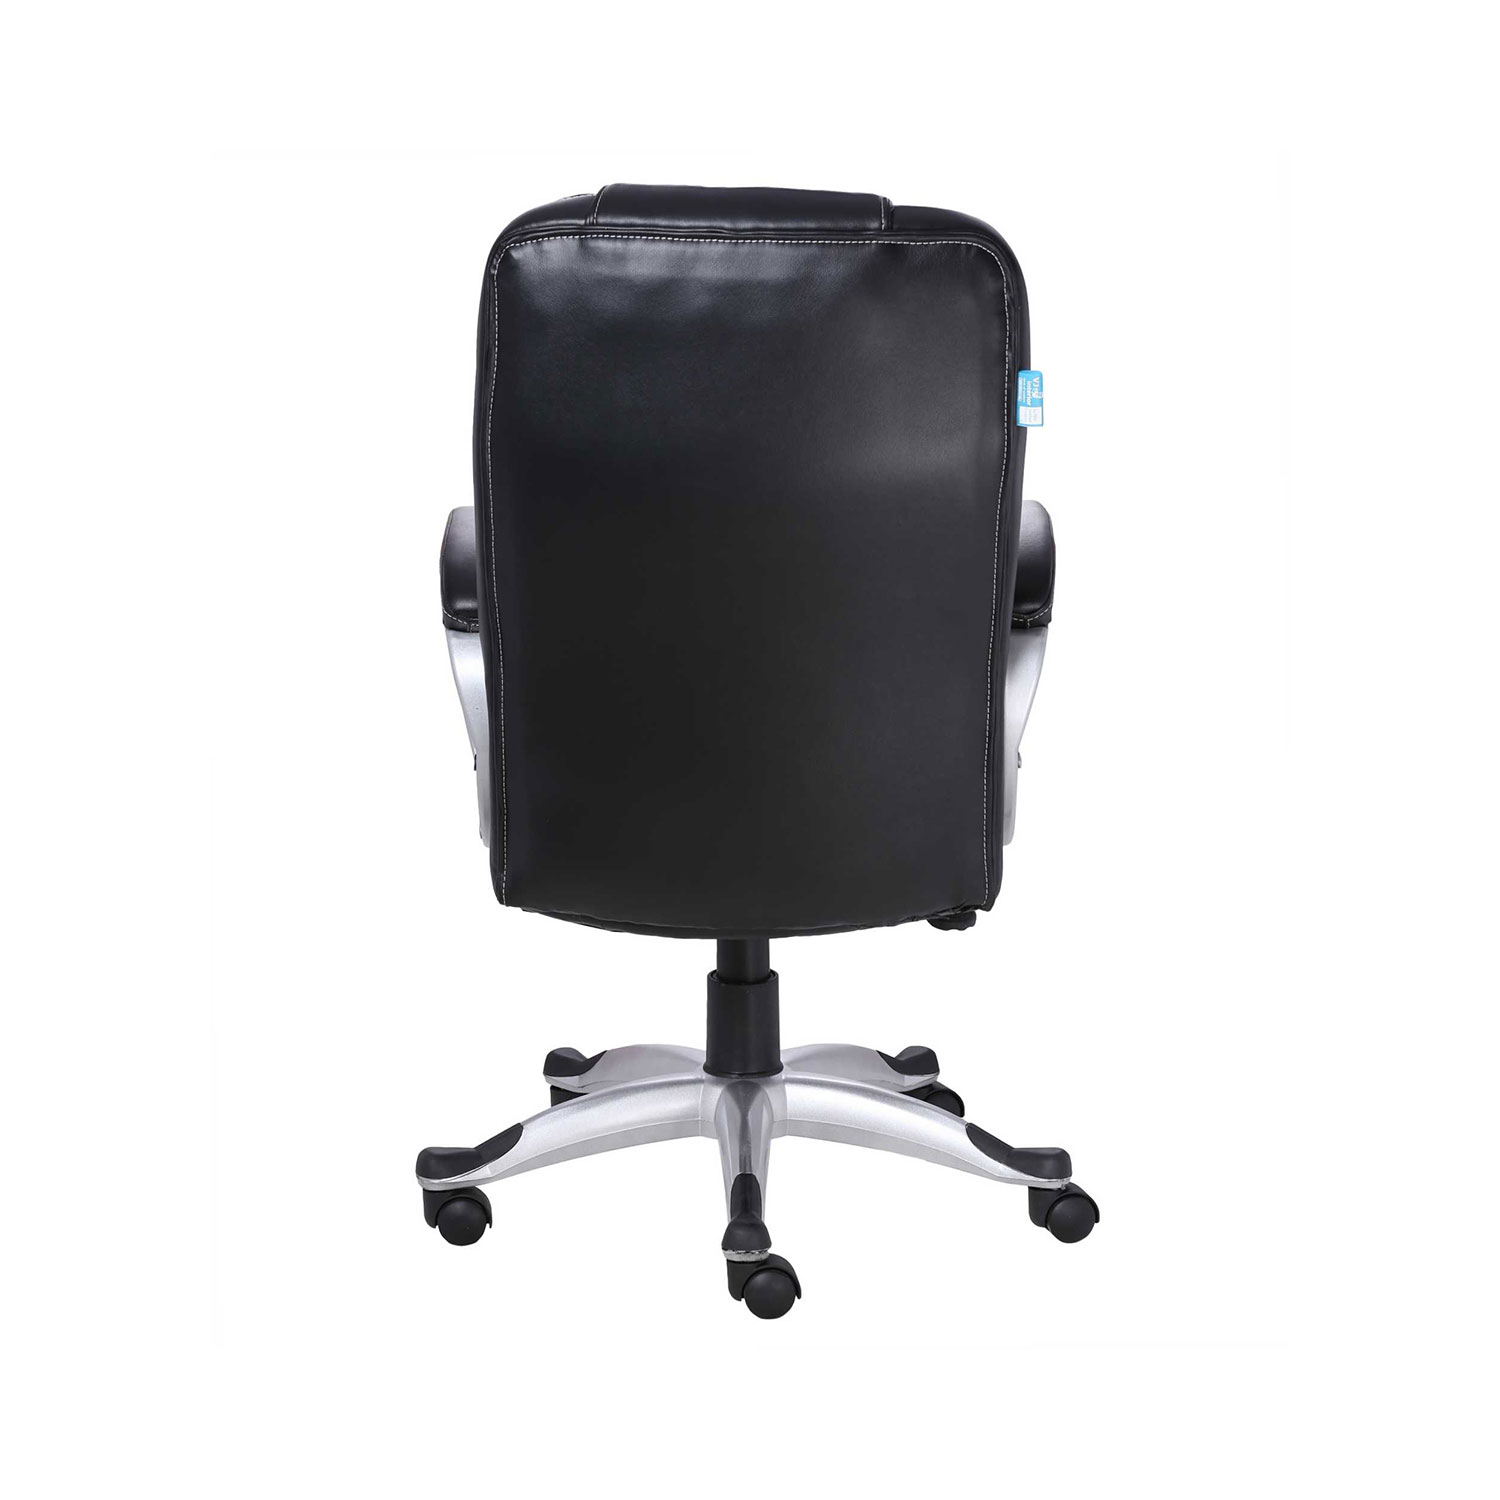 The Lovely Executive High Back Chair In Black Color Vj